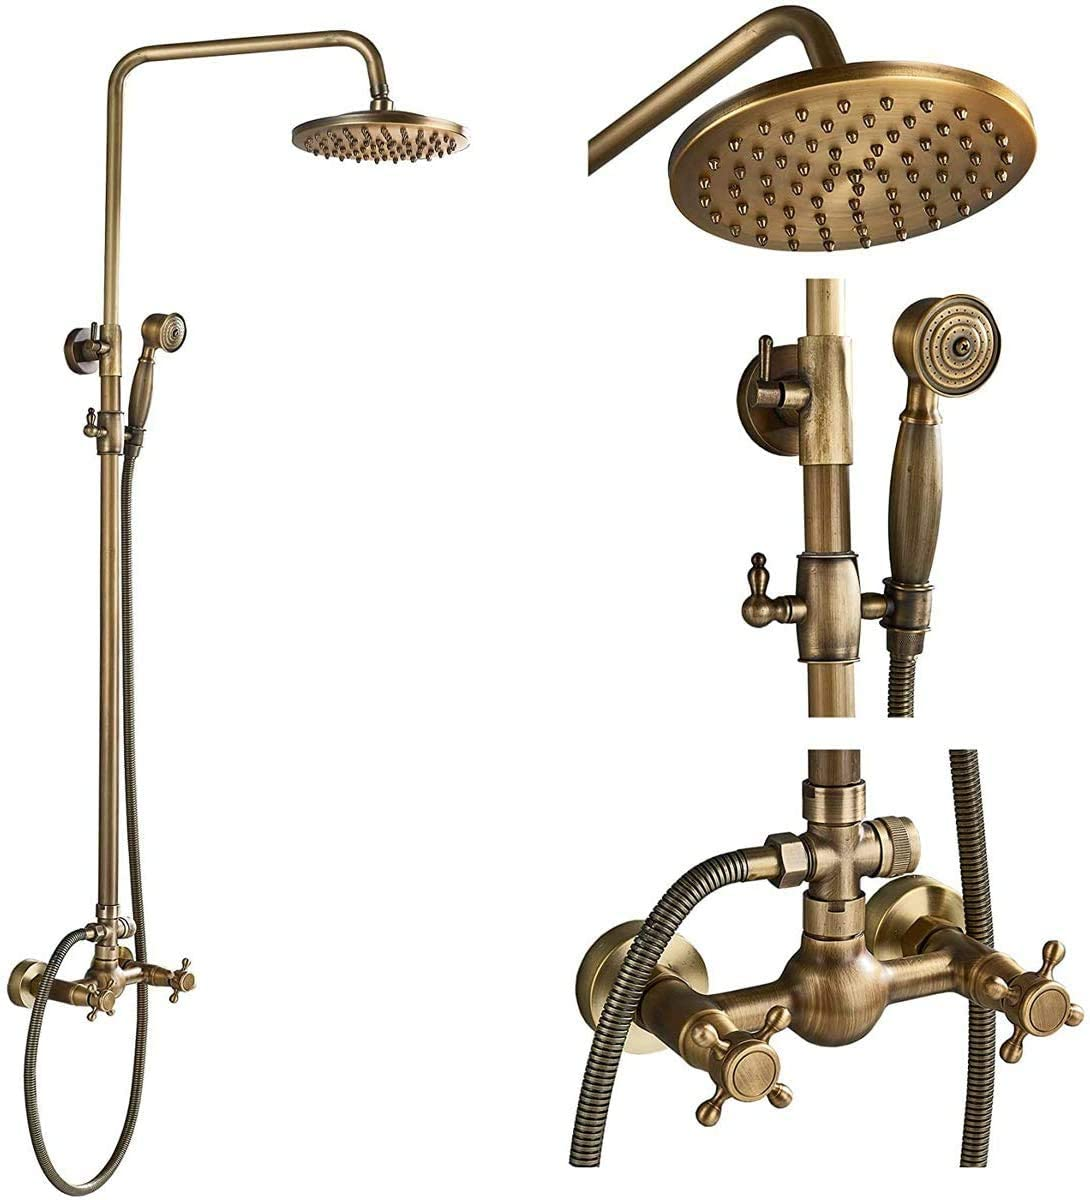 NeierThodore Antique Brass Bathroom Shower Faucet System Set 8 Inch Rainfall Shower Head Handheld Spray 2 Knobs Mixing